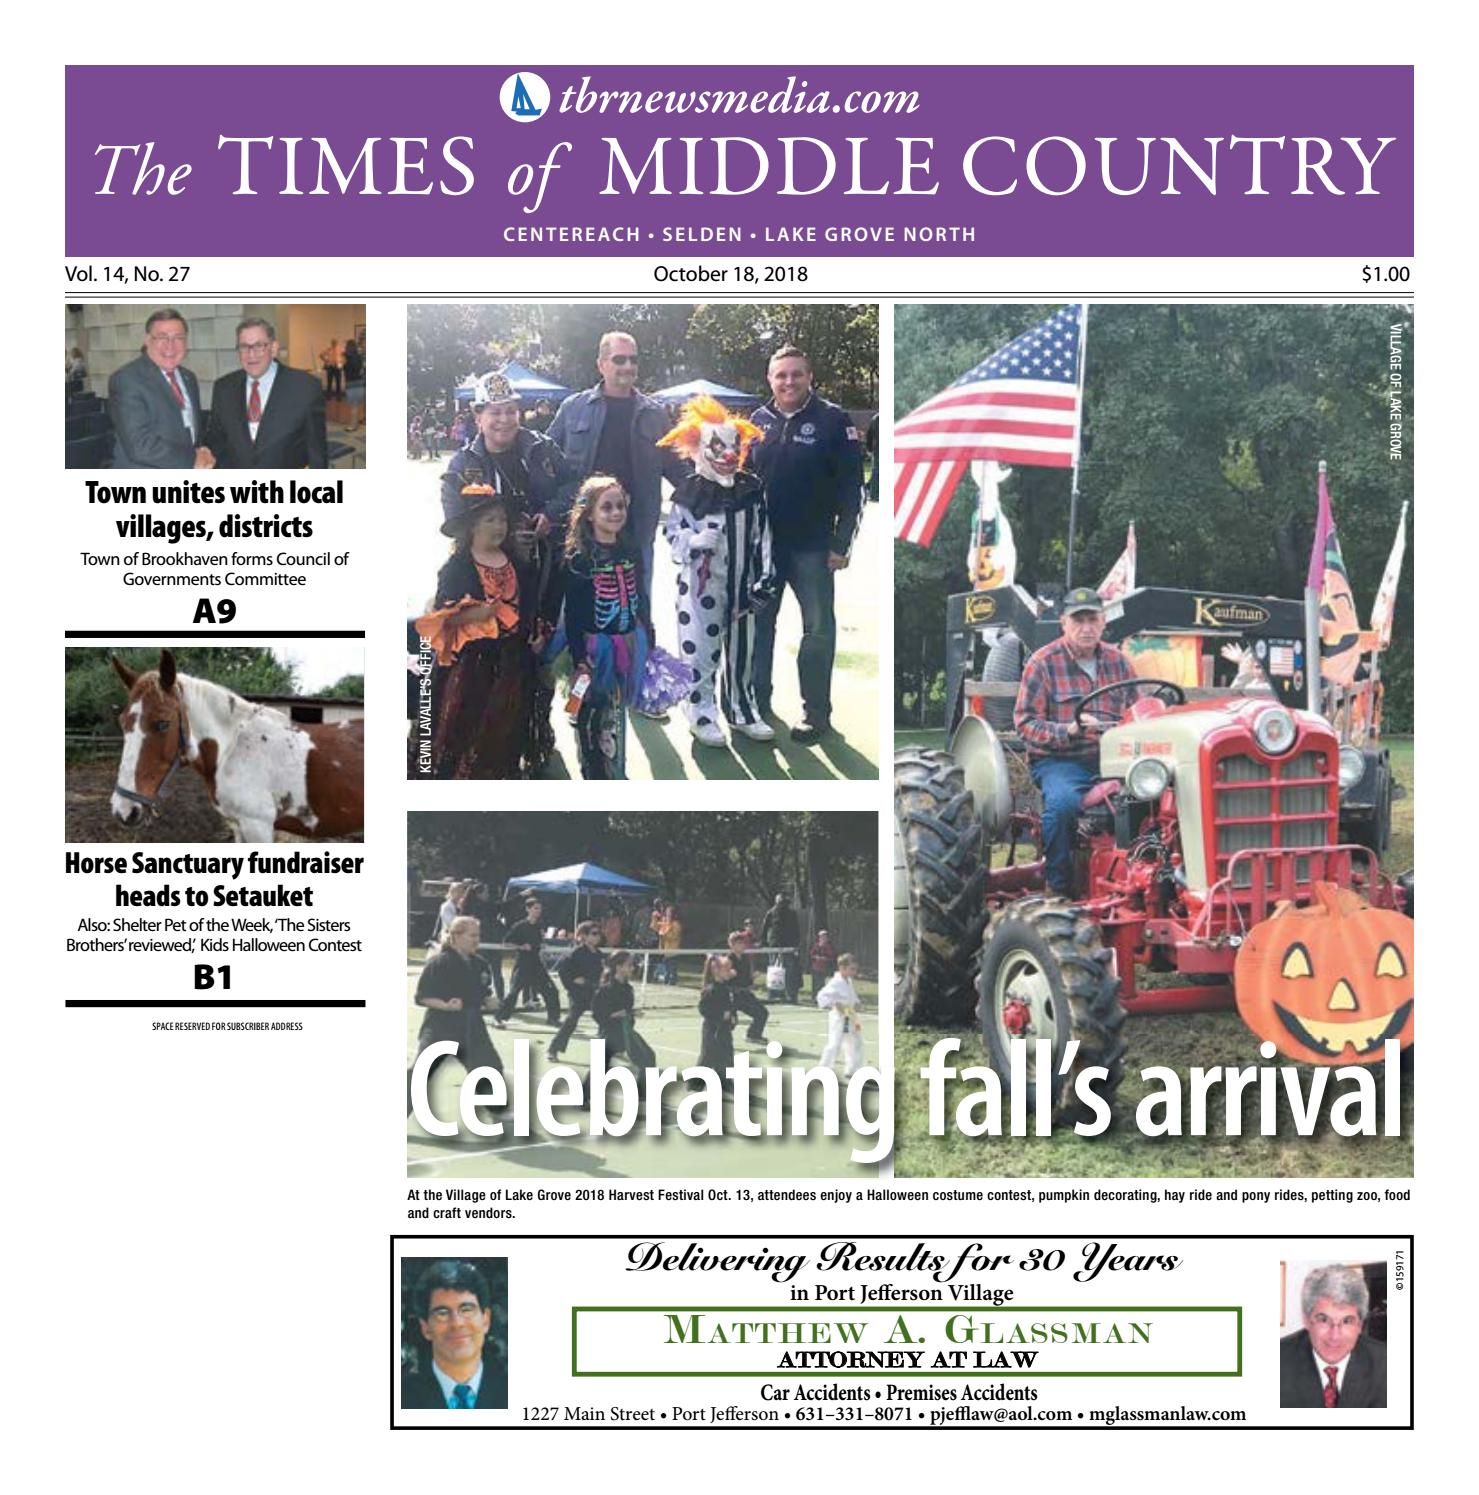 The Times of Middle Country October 18 2018 by TBR News Media issuu